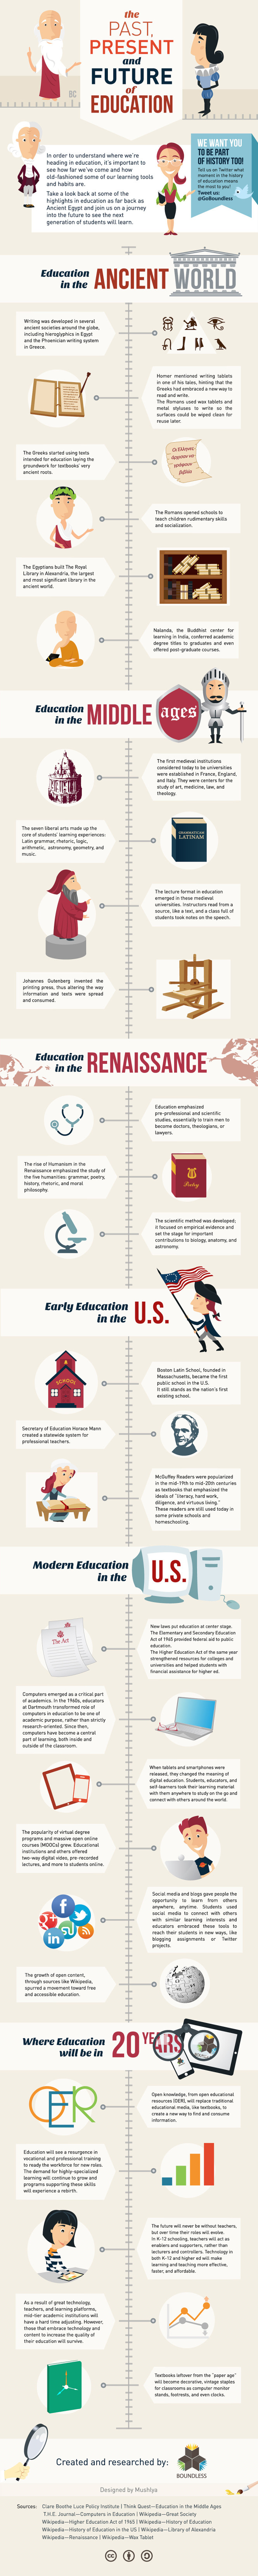 The History of Education [Infographic]